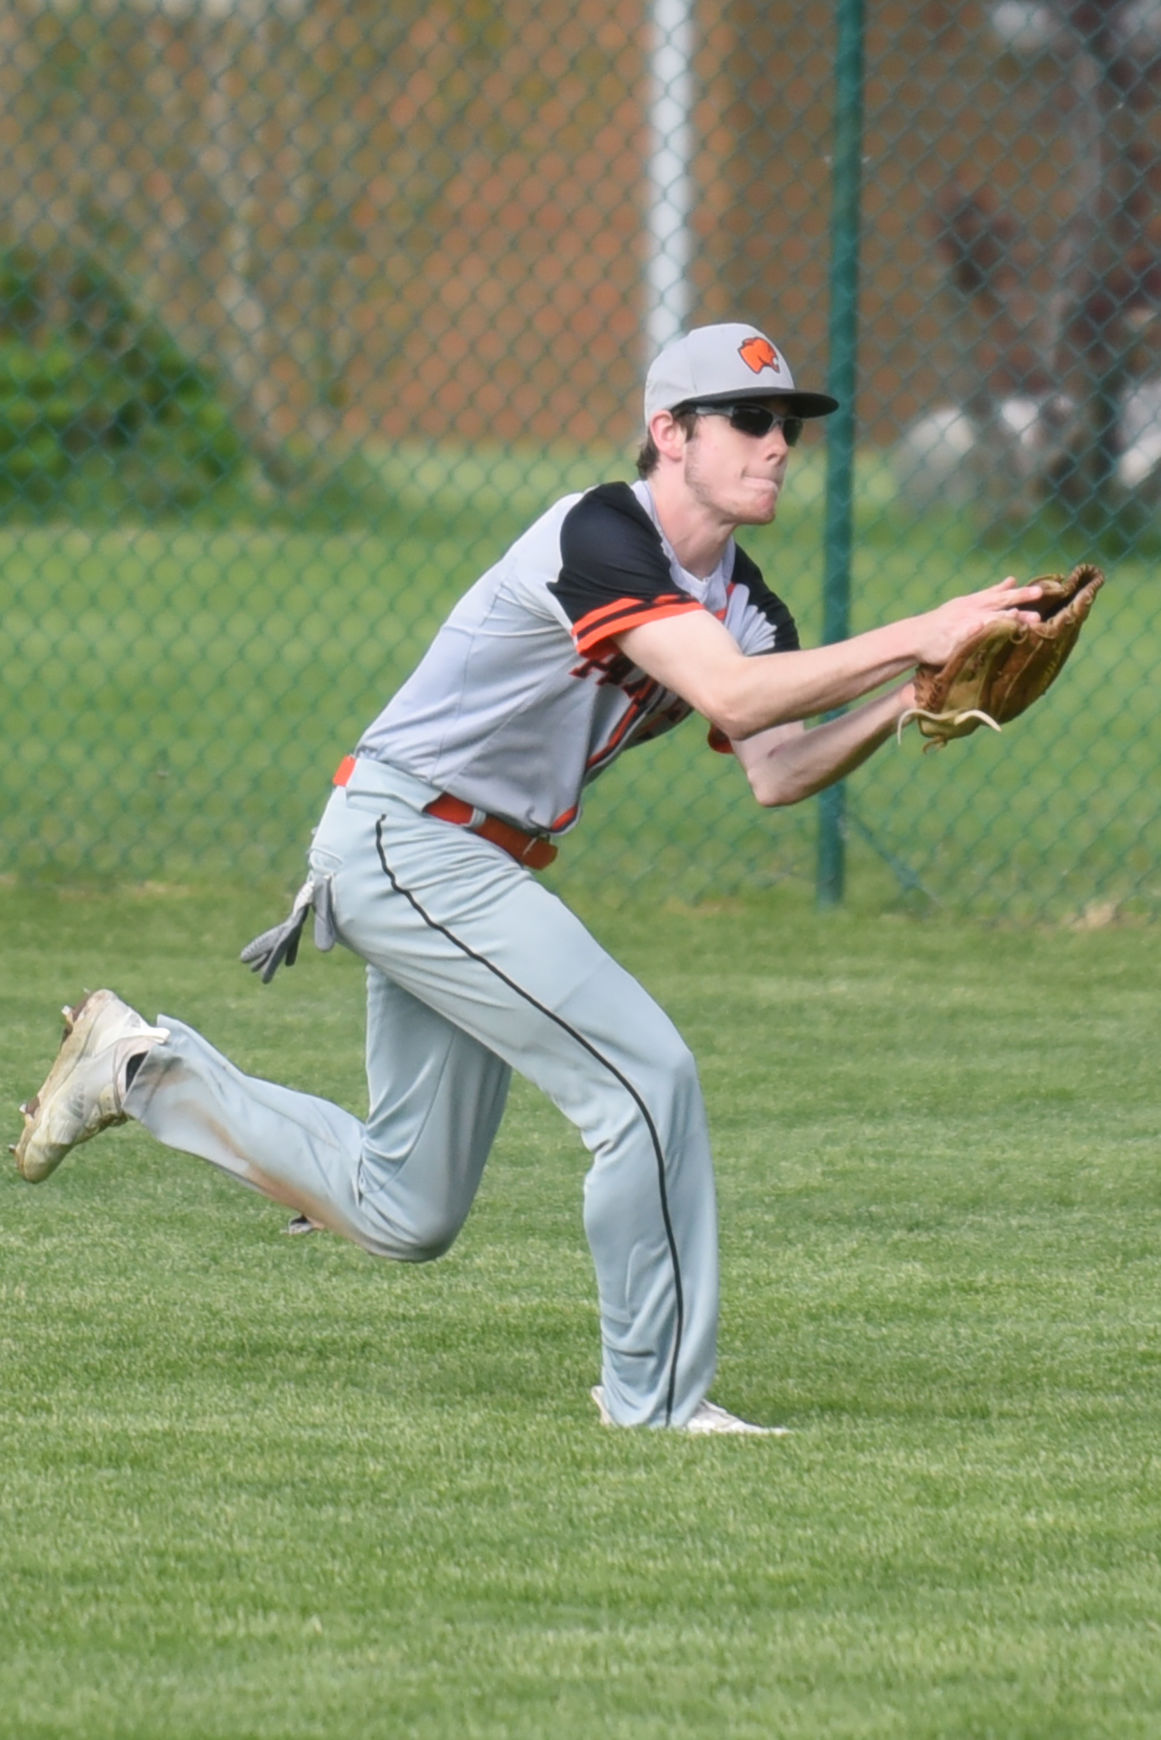 Three local schools to play condensed fall baseball schedule